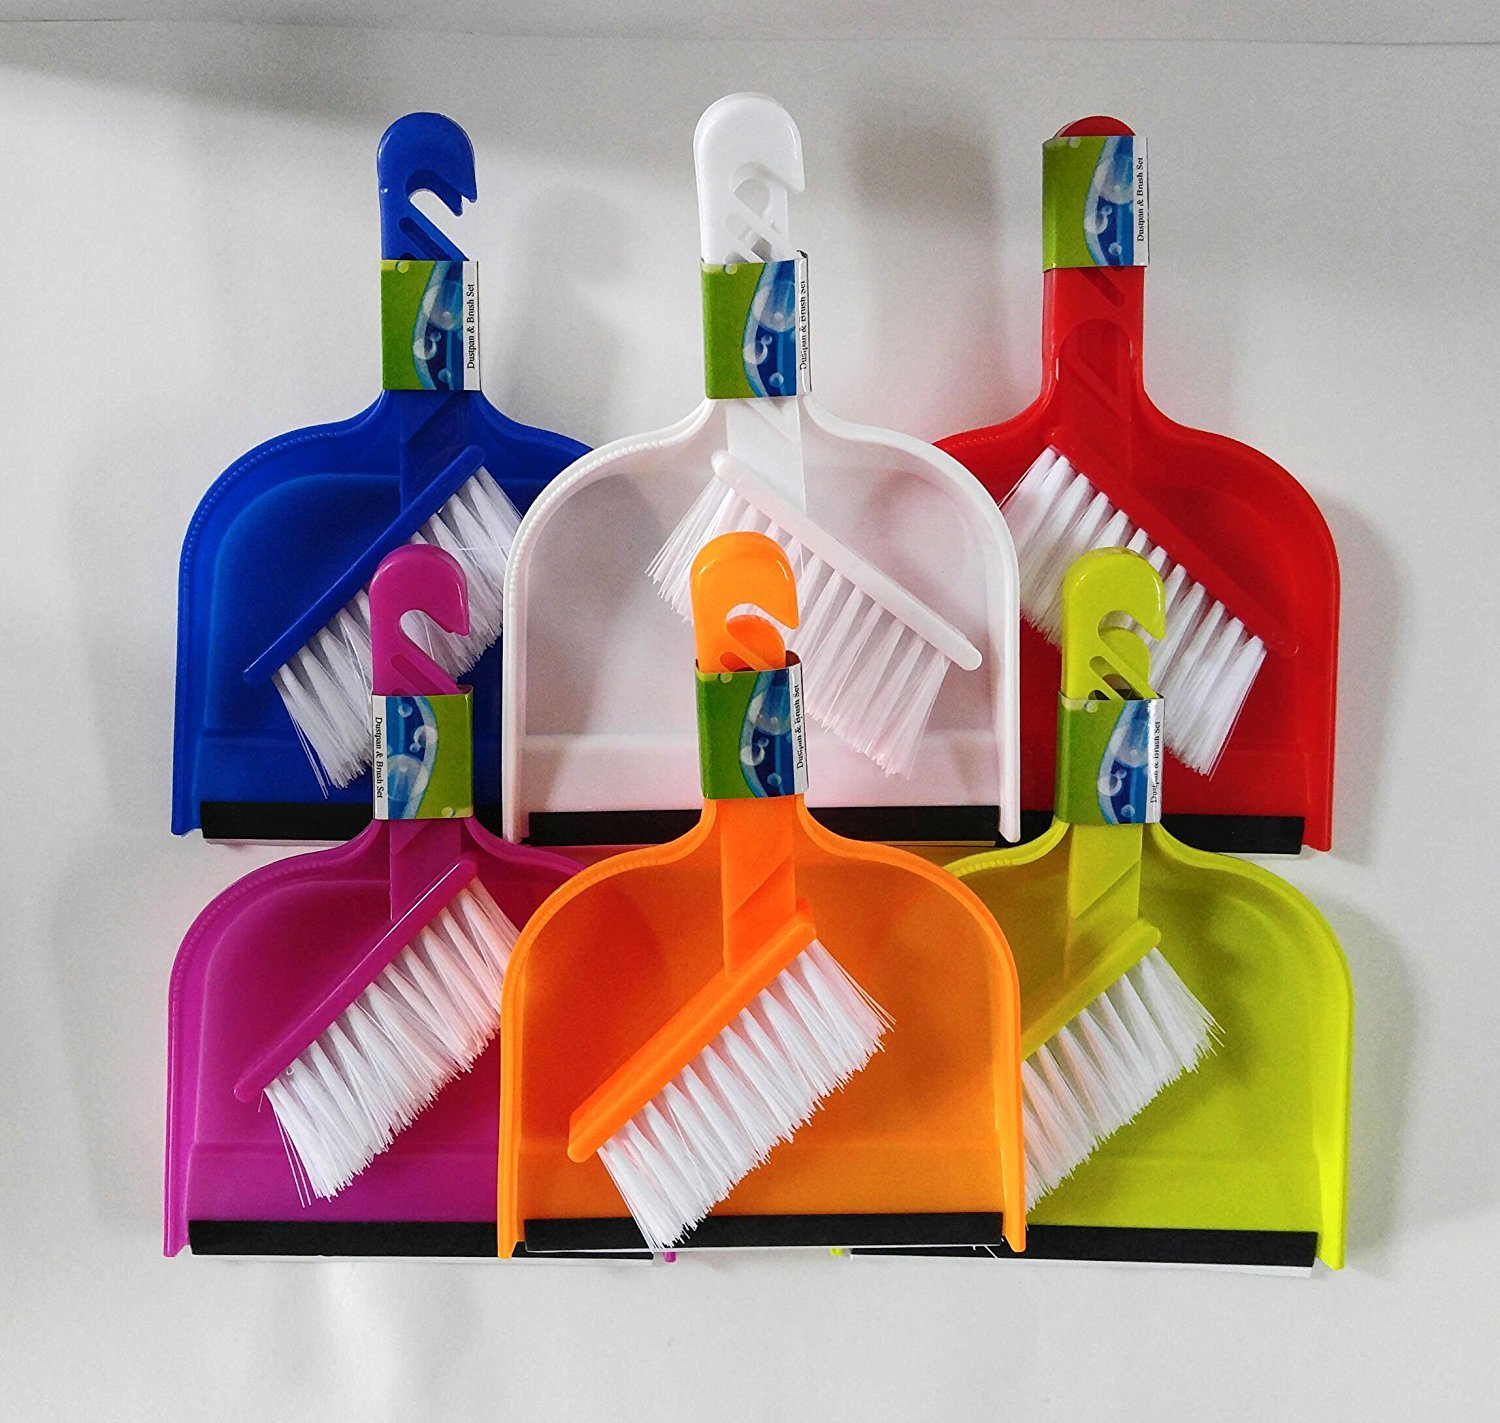 Small Set of Dustpans with Rubber Lip and Brush (Mini) (Assorted, 24) by Regent Products Corp (Image #1)